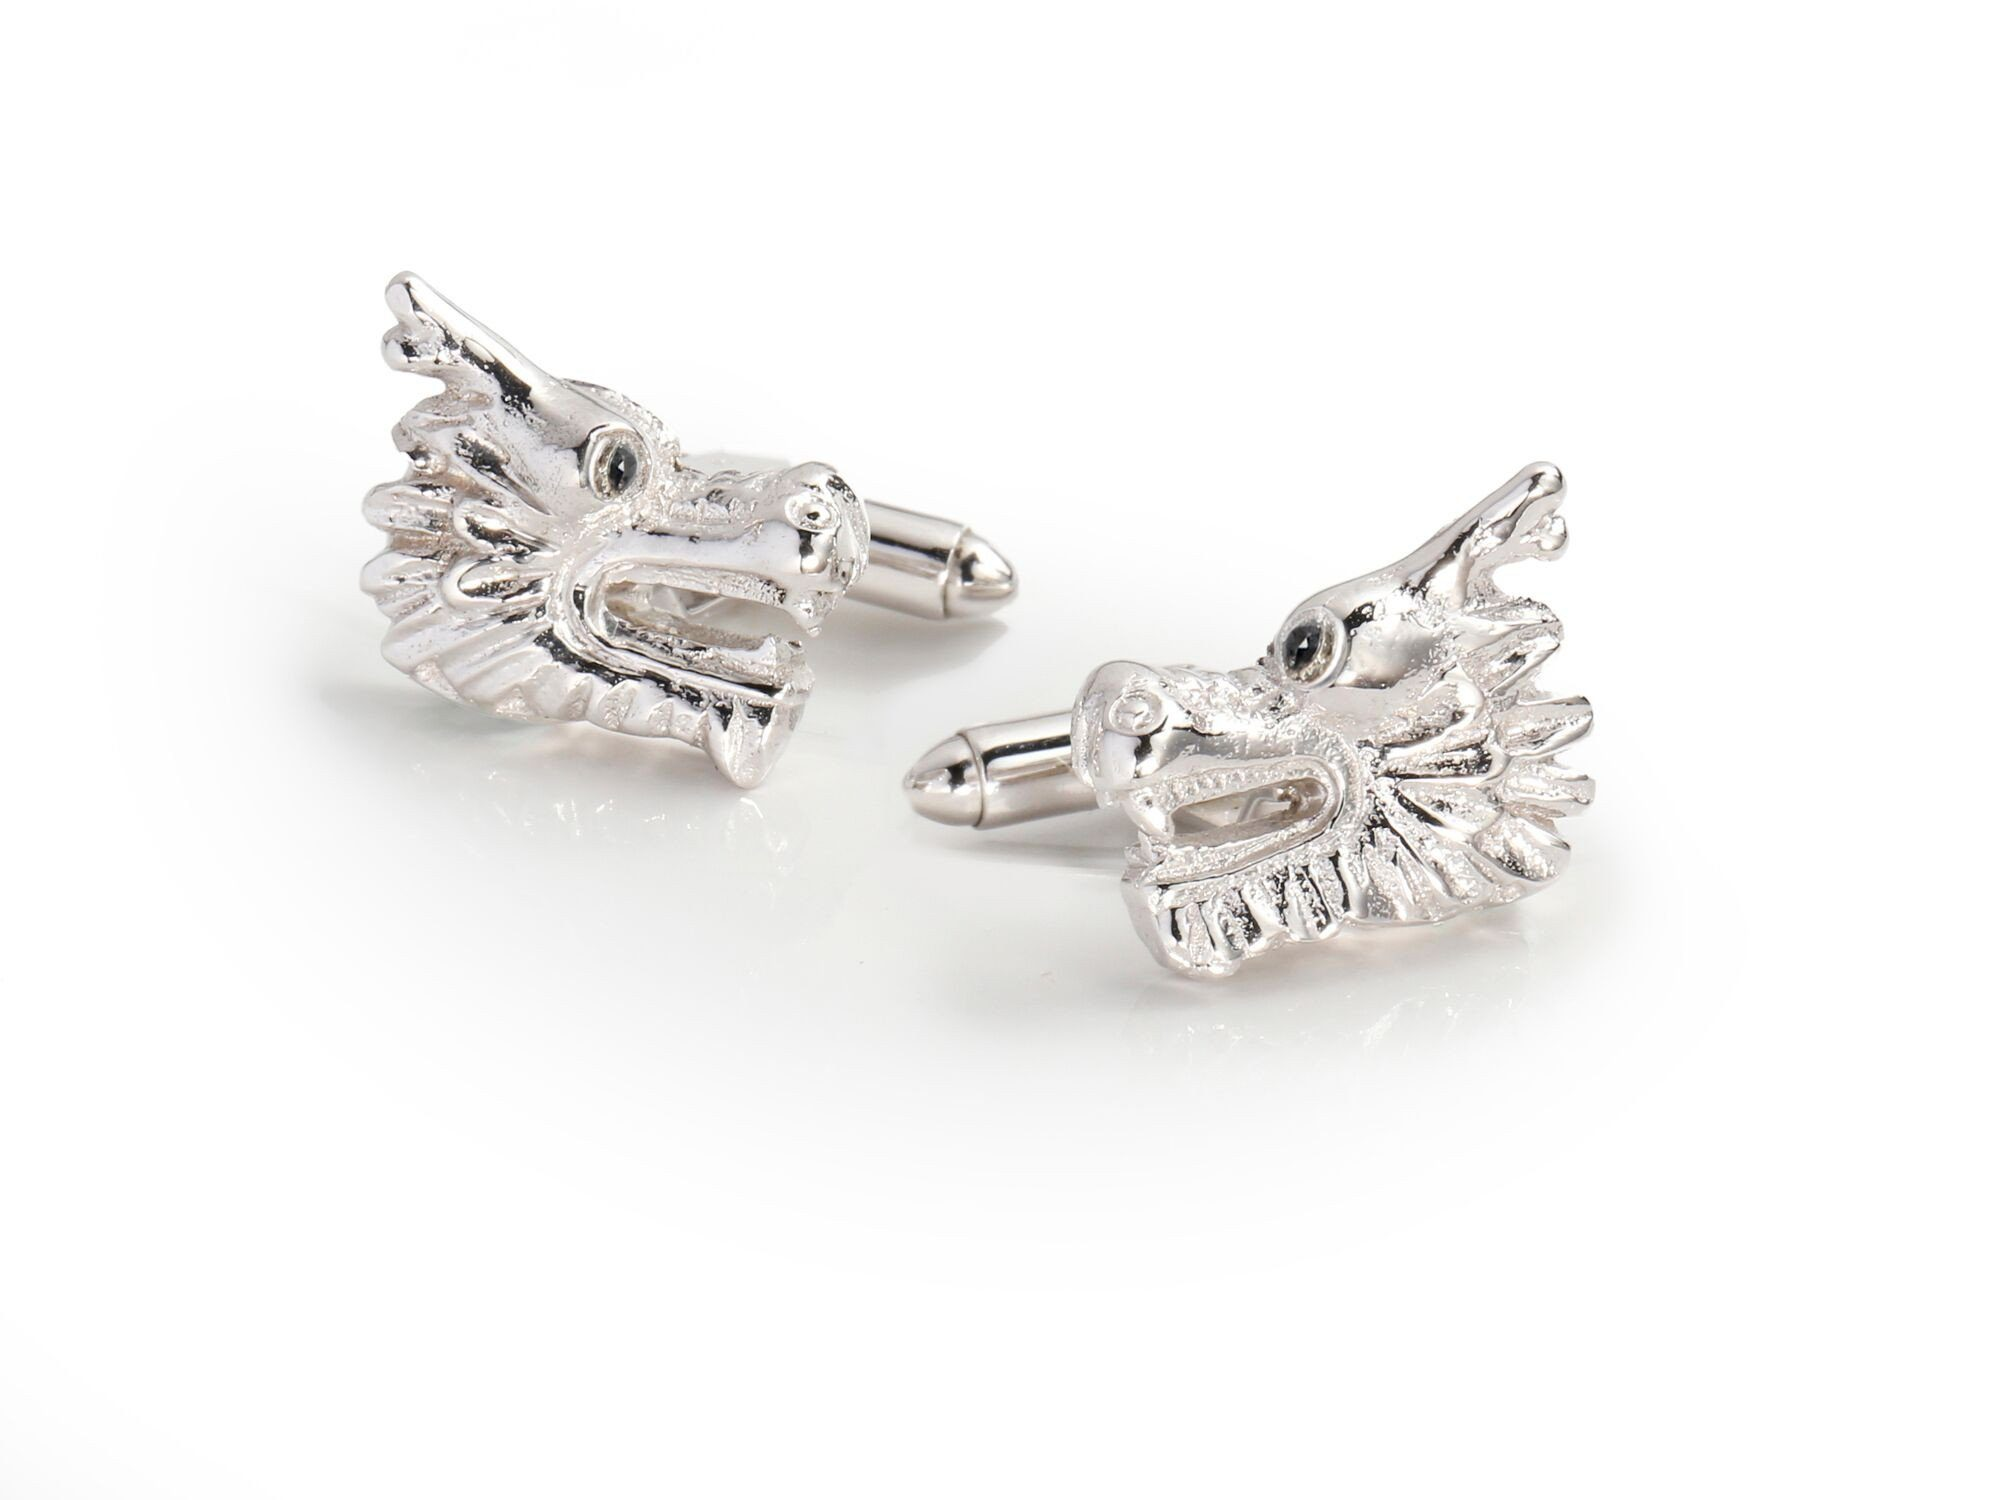 Cufflink - Dragon Cufflinks With Semi-Precious Stones